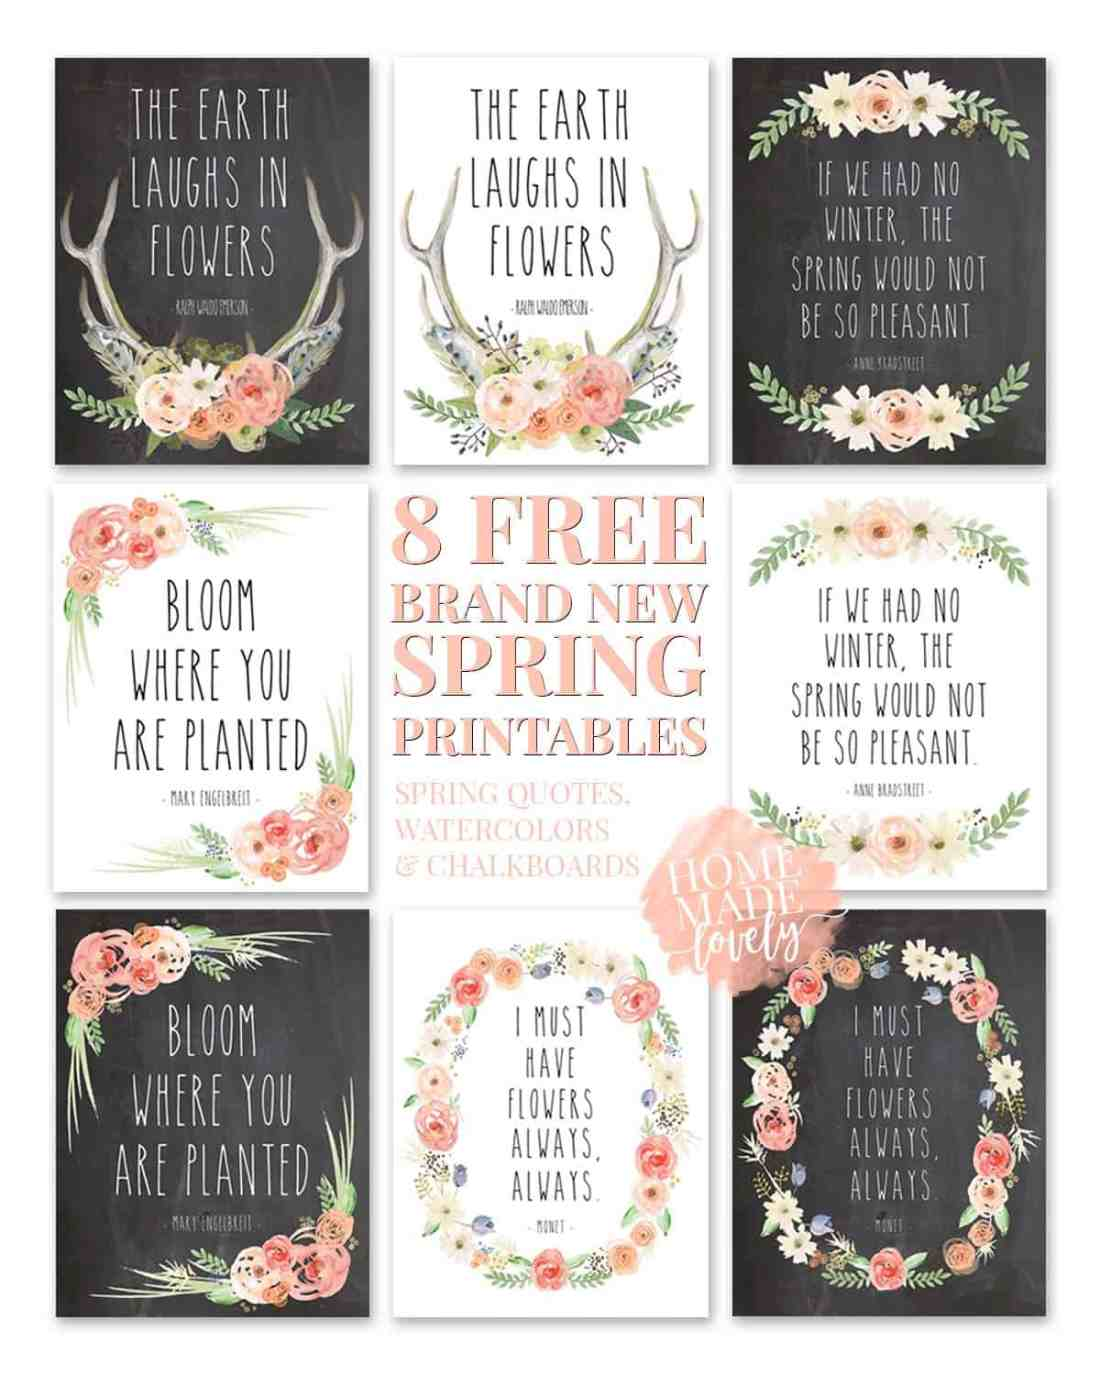 Please accept these 8 brand new free spring printables as our way of saying thank you for coming to Home Made Lovely again and again. We appreciate you, more than you know!